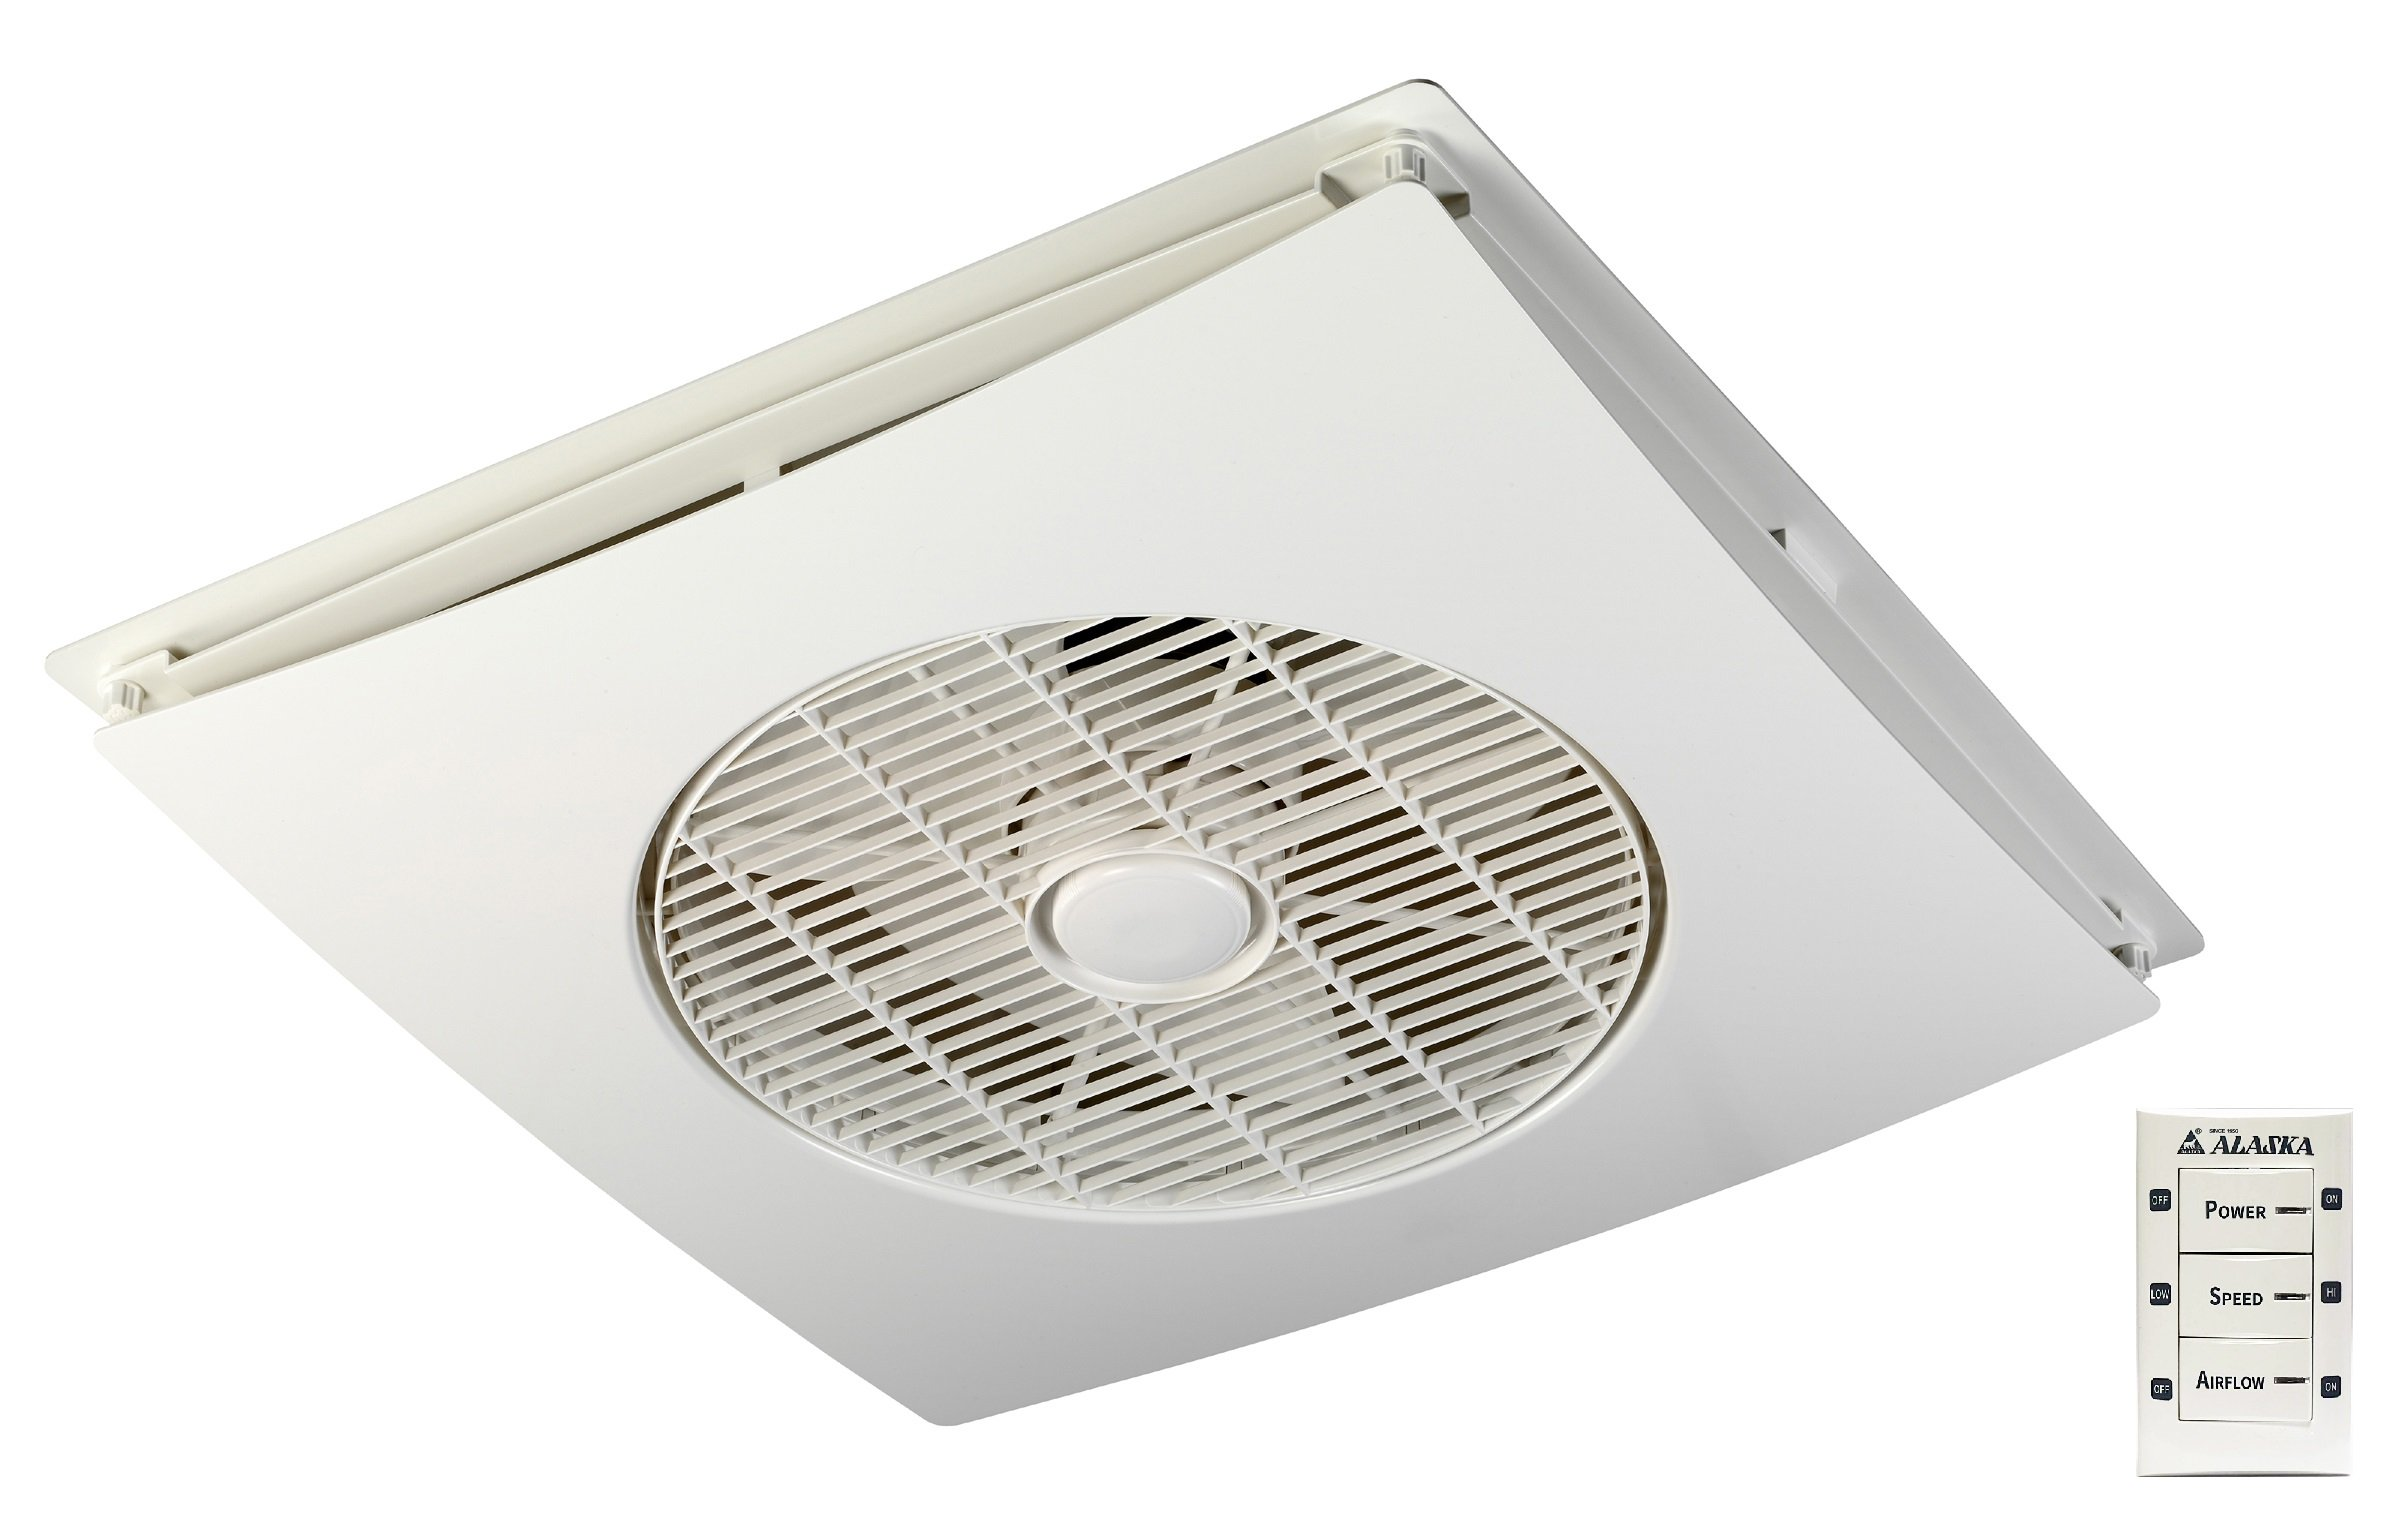 Drop Ceiling Tile Fan Sa 398wc Fan For Drop Ceiling Installation Only 2 Speed Master Wall Control Included Buy Online In Grenada At Grenada Desertcart Com Productid 71525038